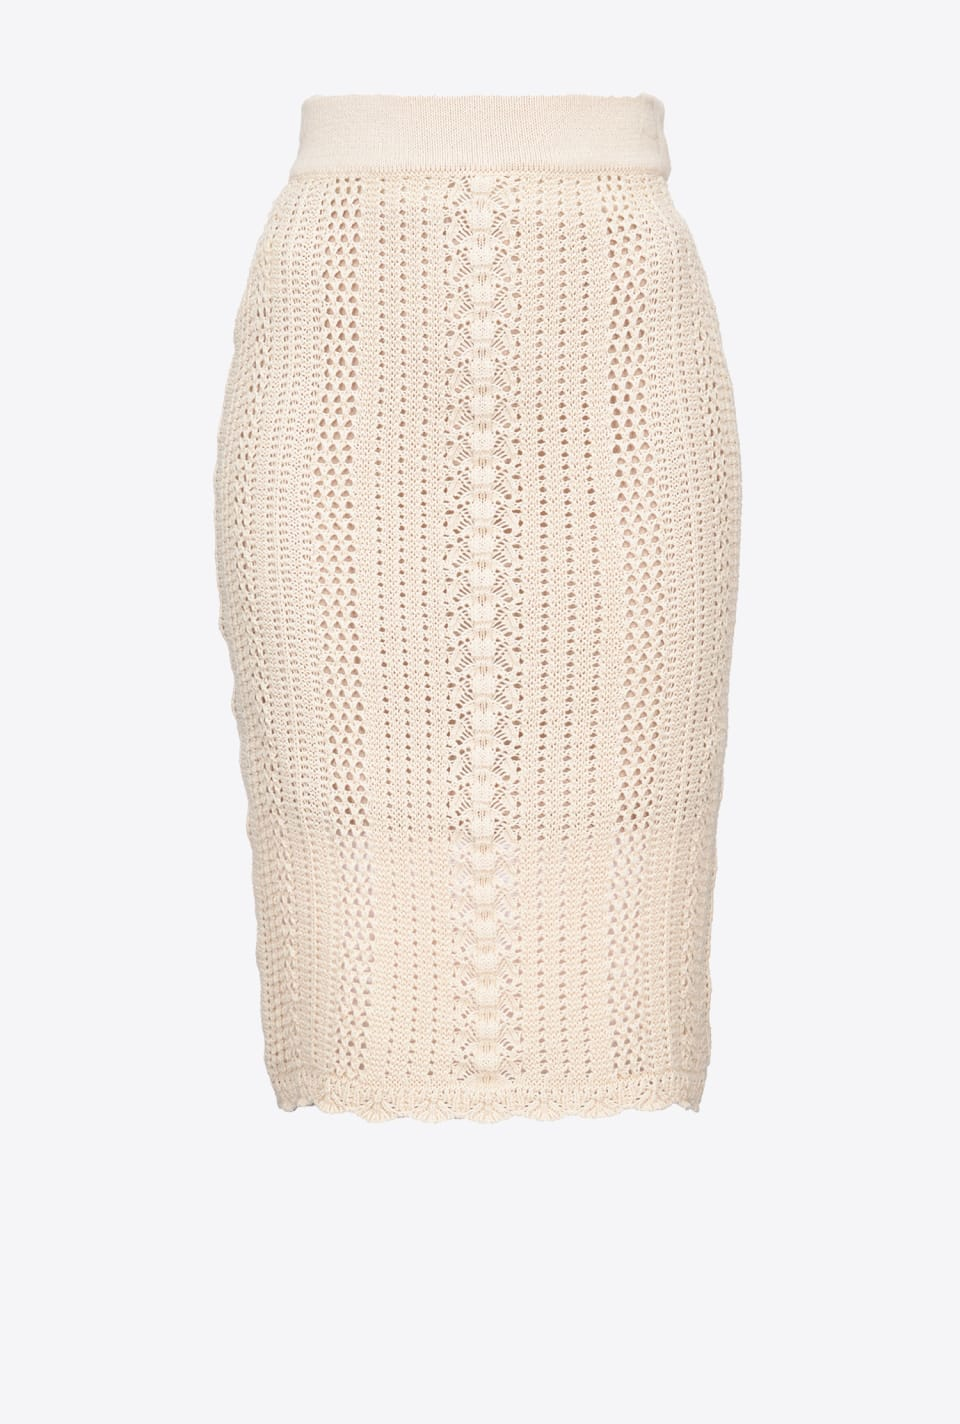 Cotton crochet midi skirt - Pinko